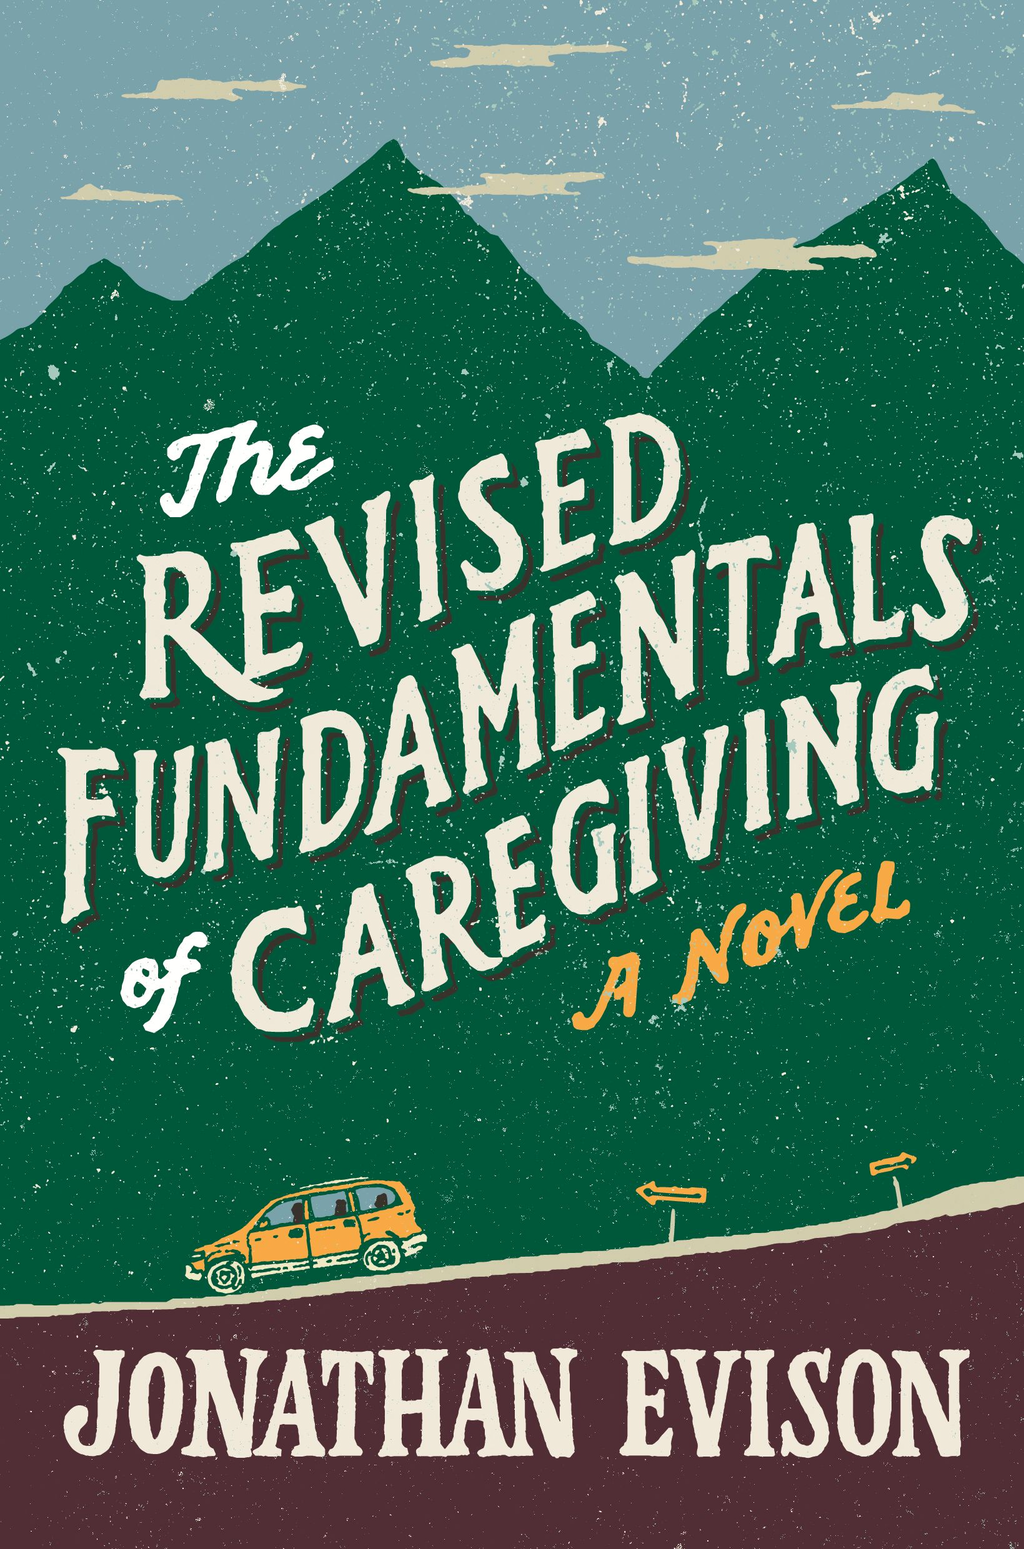 Free Kobo Ebook Of The Revised Fundamentals Of Caregiving By Jonathan Evison  Now Until May 27th